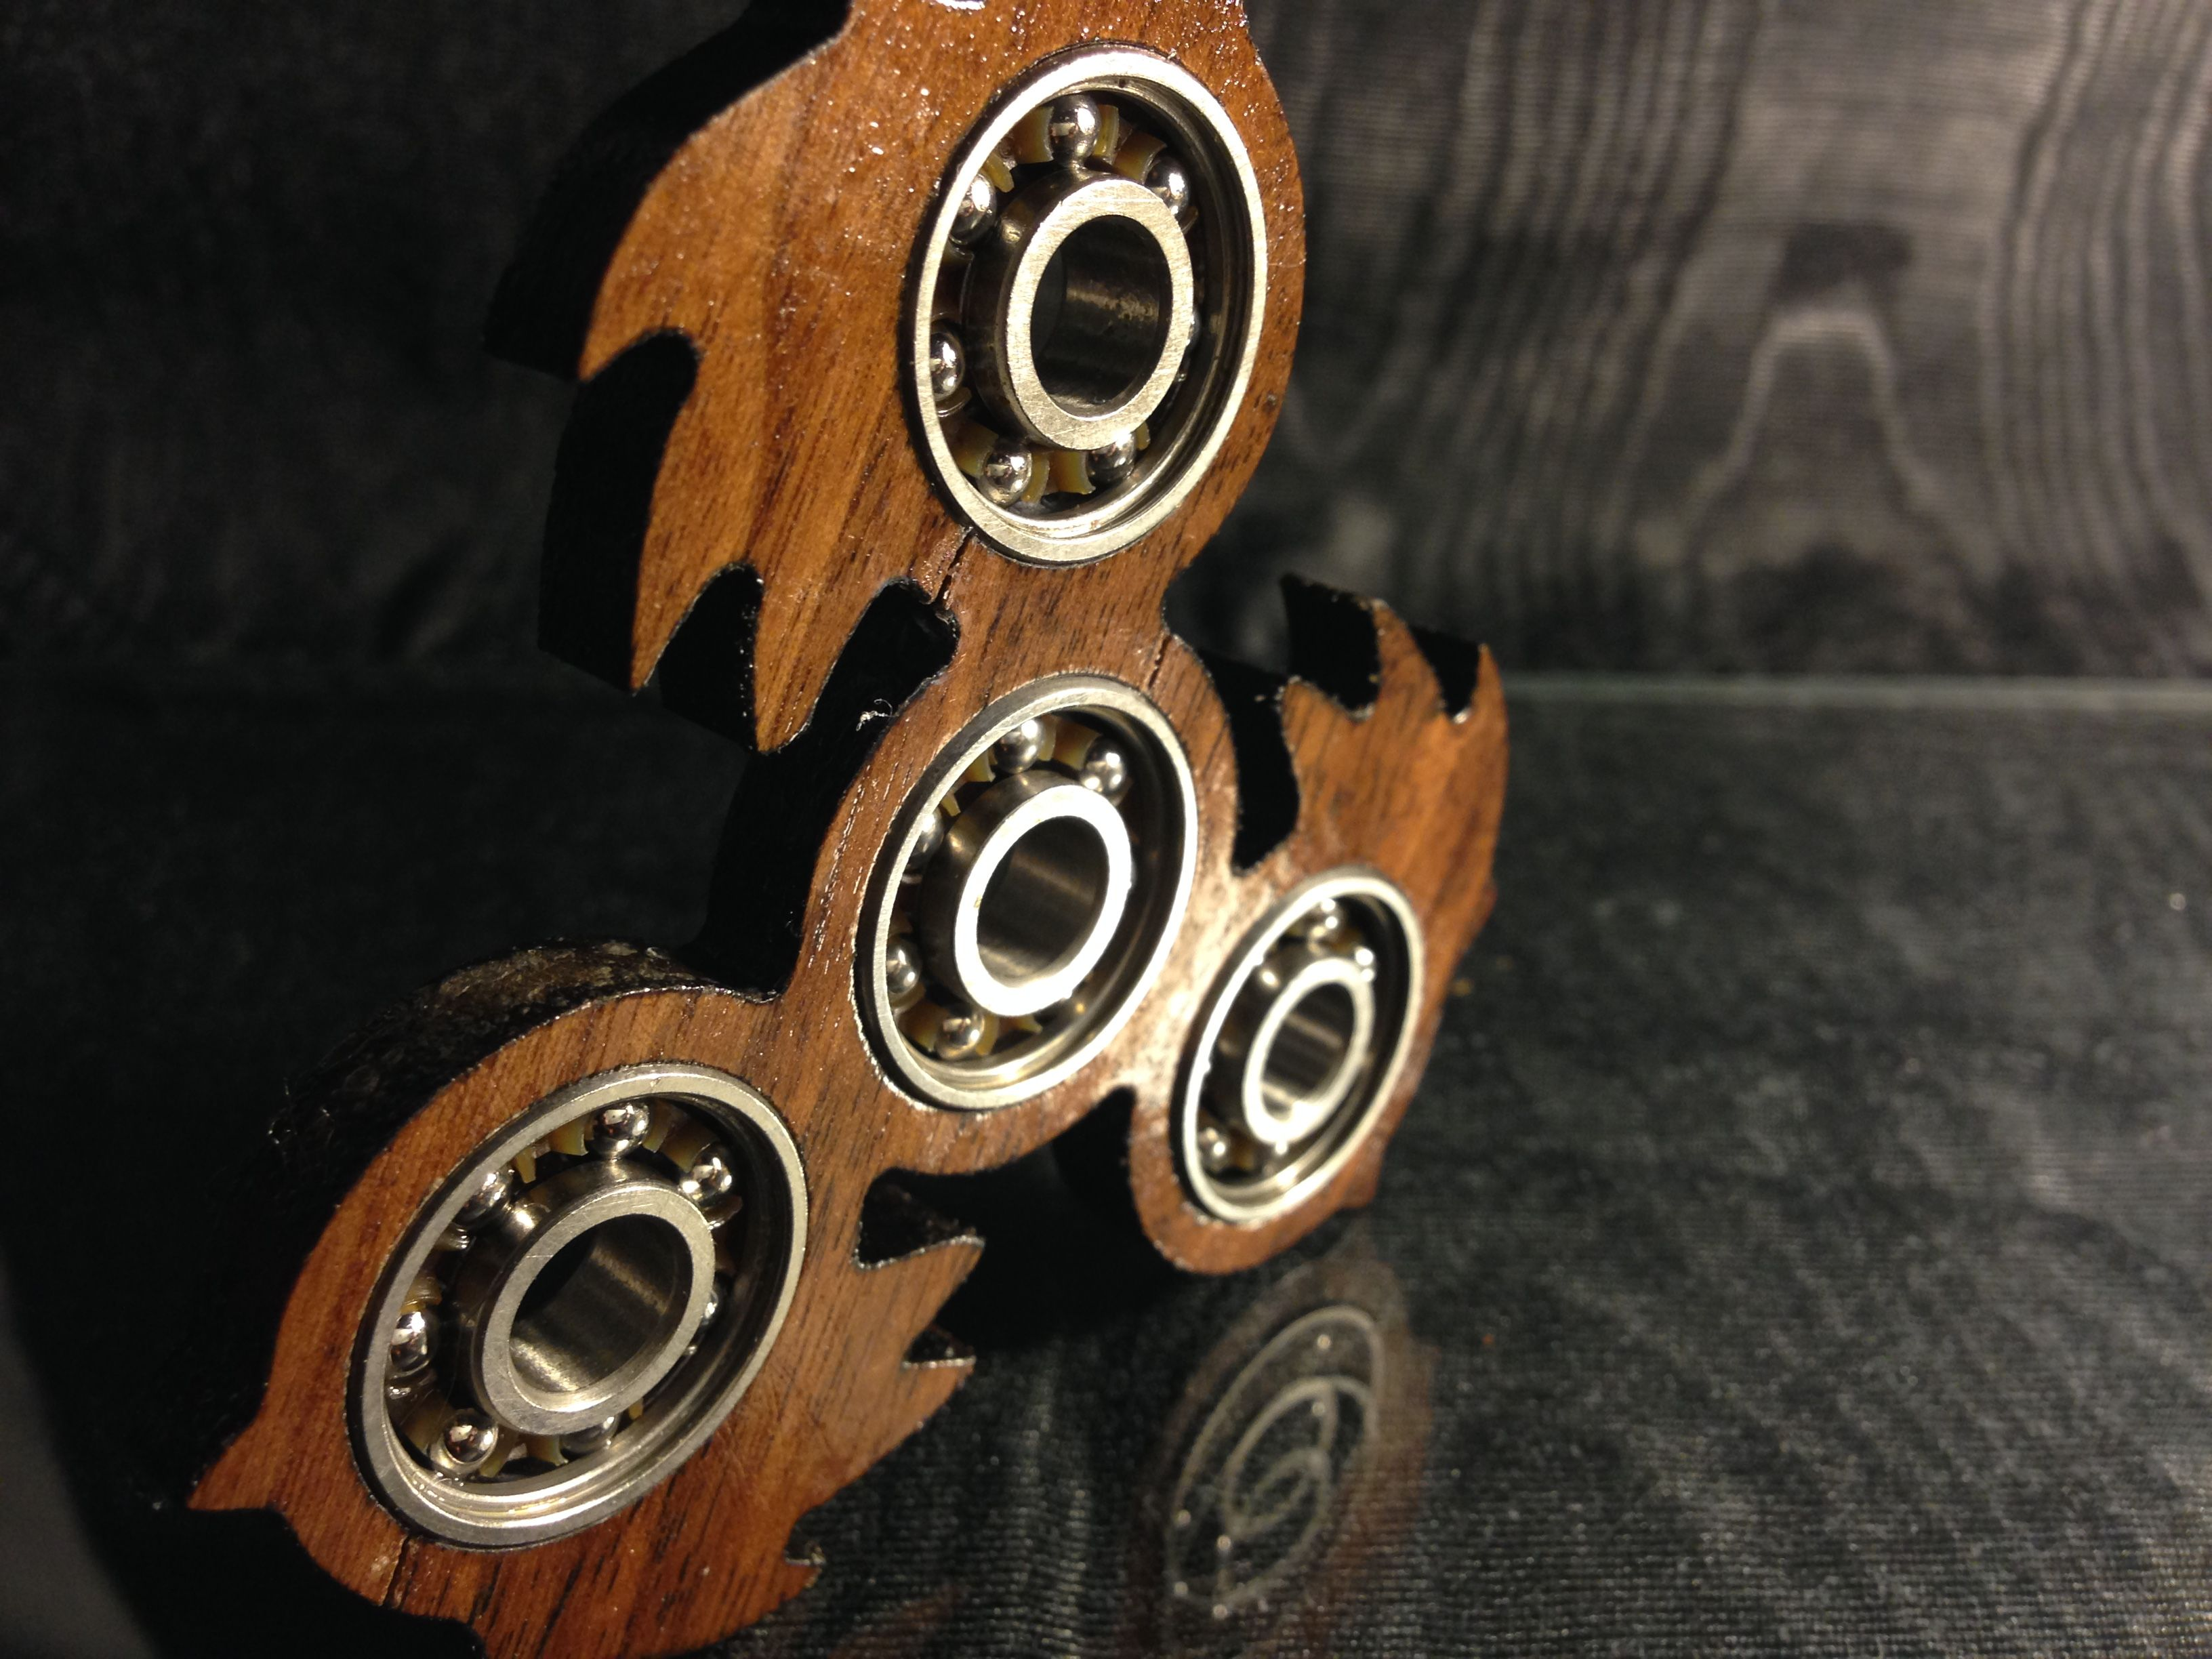 a9ef7dfec13df01a4ae4c5f1ec856711 pin by brooin tech on edc fidget spinner pinterest woodworking,Genji Fidget Spinner Meme